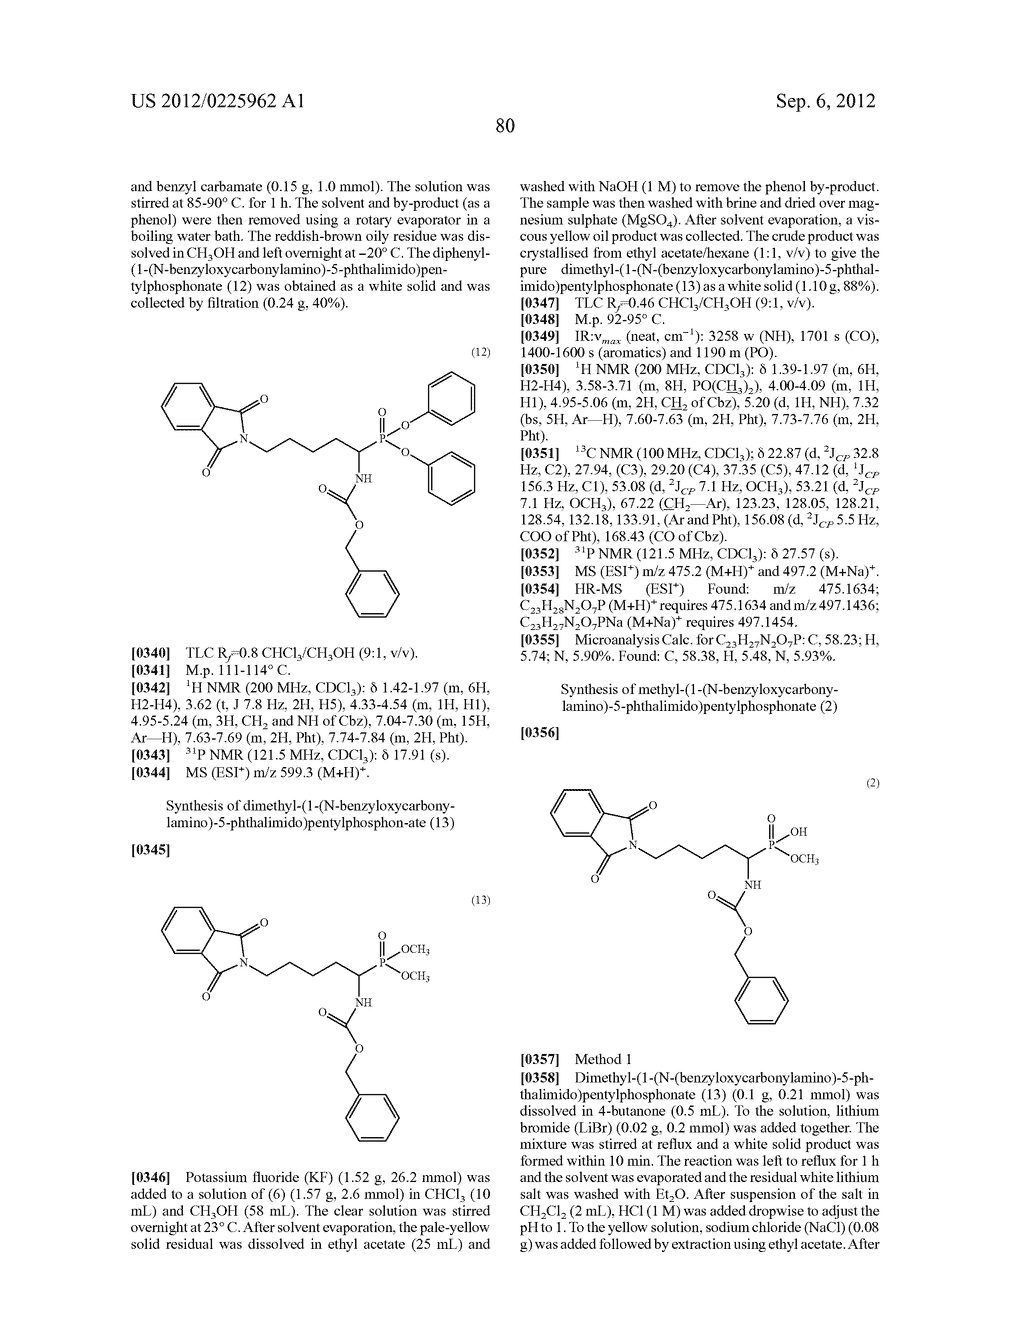 MOLECULARLY IMPRINTED POLYMERS, METHODS FOR THEIR PRODUCTION AND USES     THEREOF - diagram, schematic, and image 85